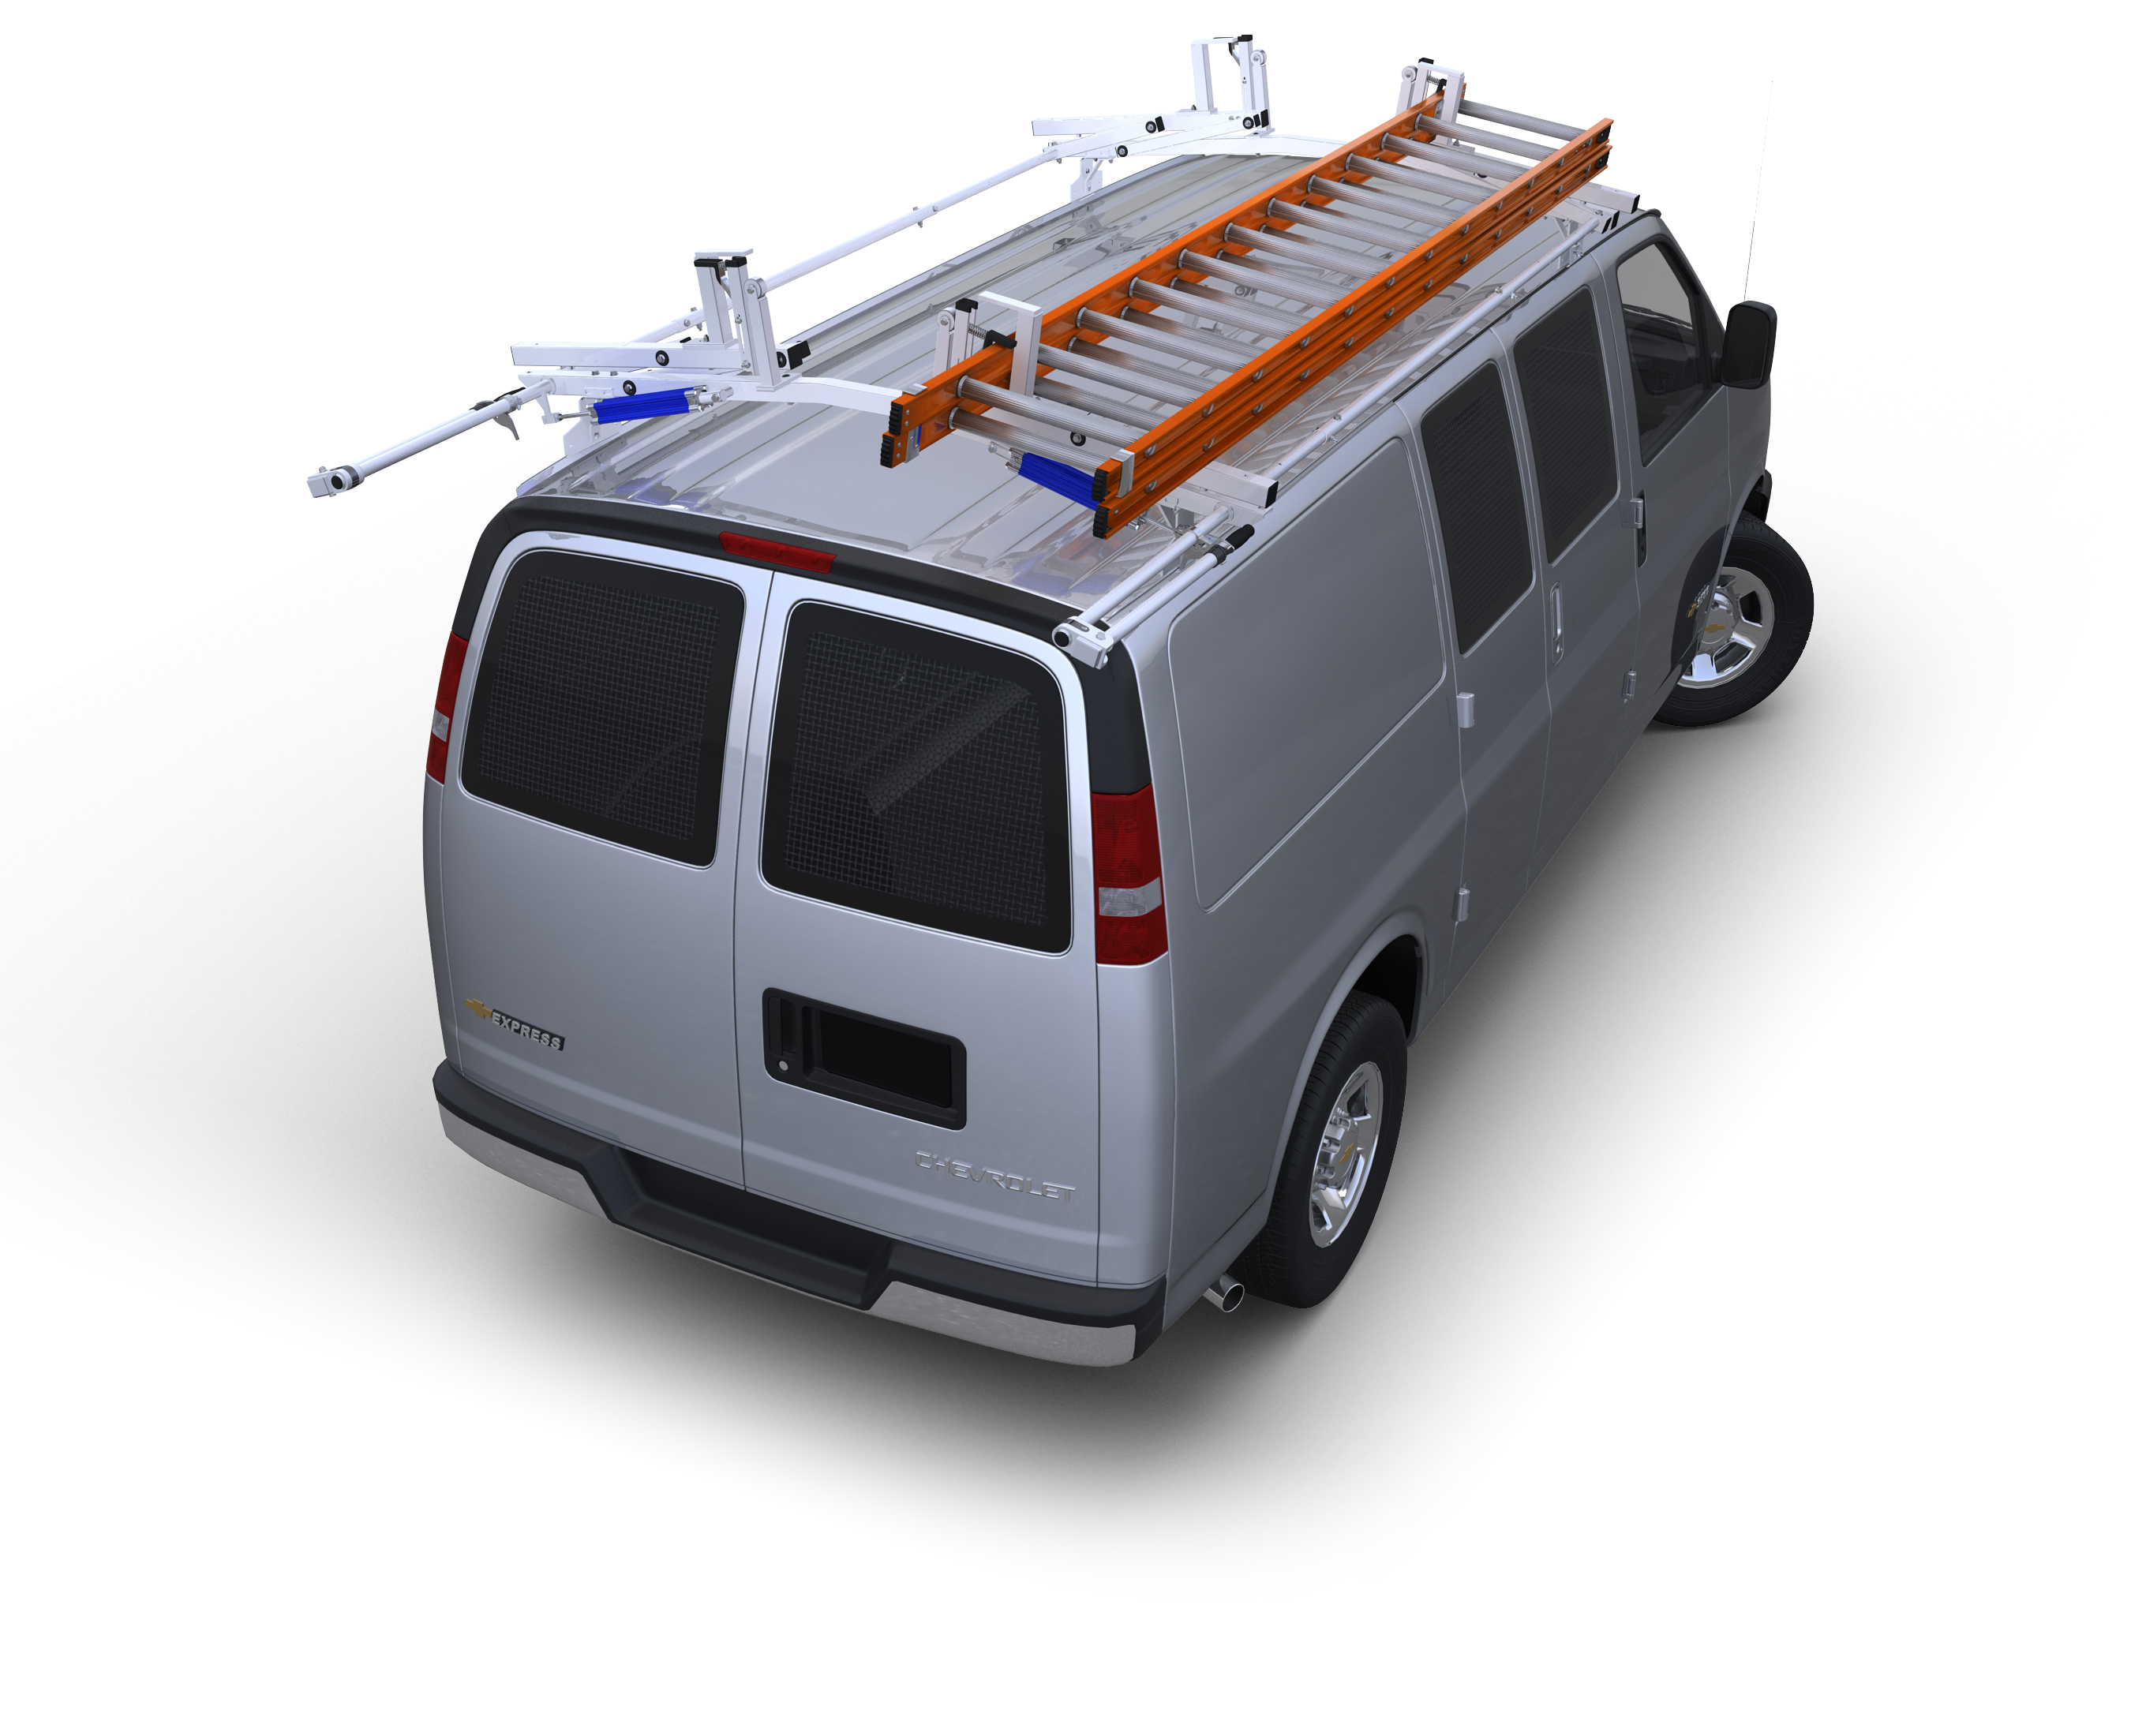 Maximum Capacity 65 Quot High Shelving W Closed Back For Dodge Ram Promaster High Roof Vans